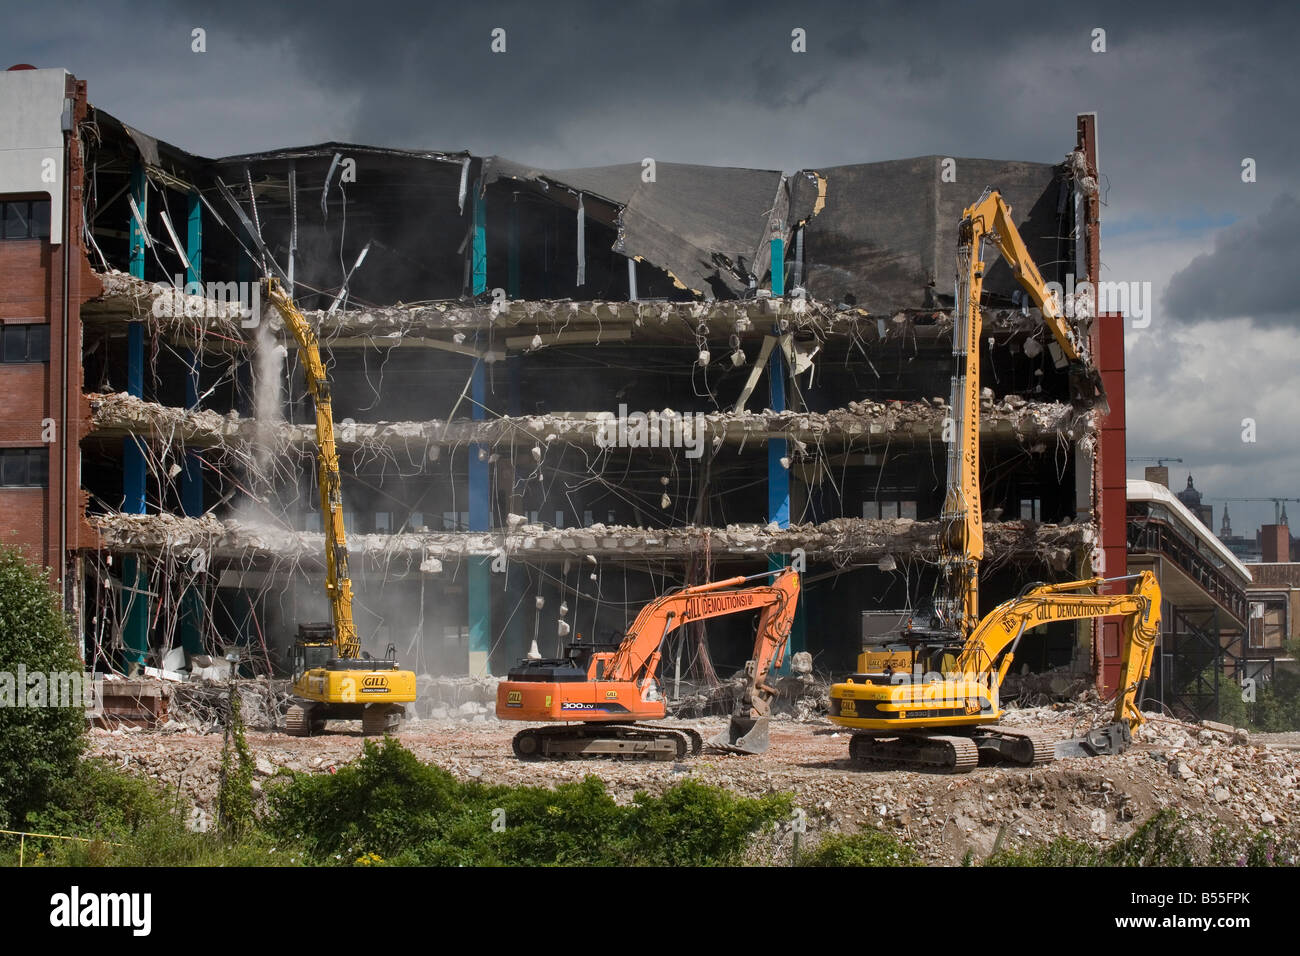 Demolition of commercial property in Leeds, Yorkshire UK - Stock Image